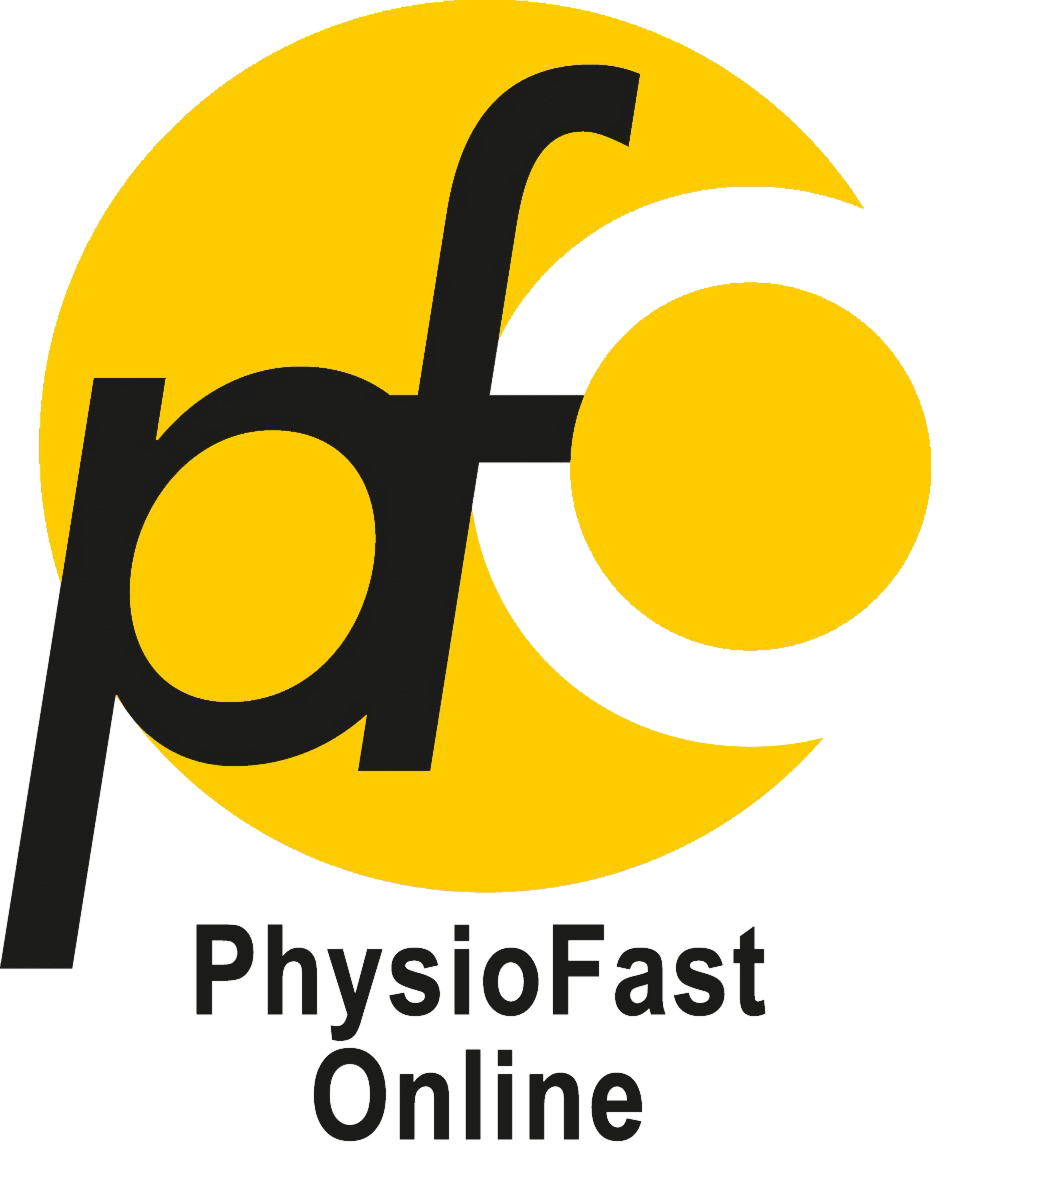 PhysioFit Online Ltd